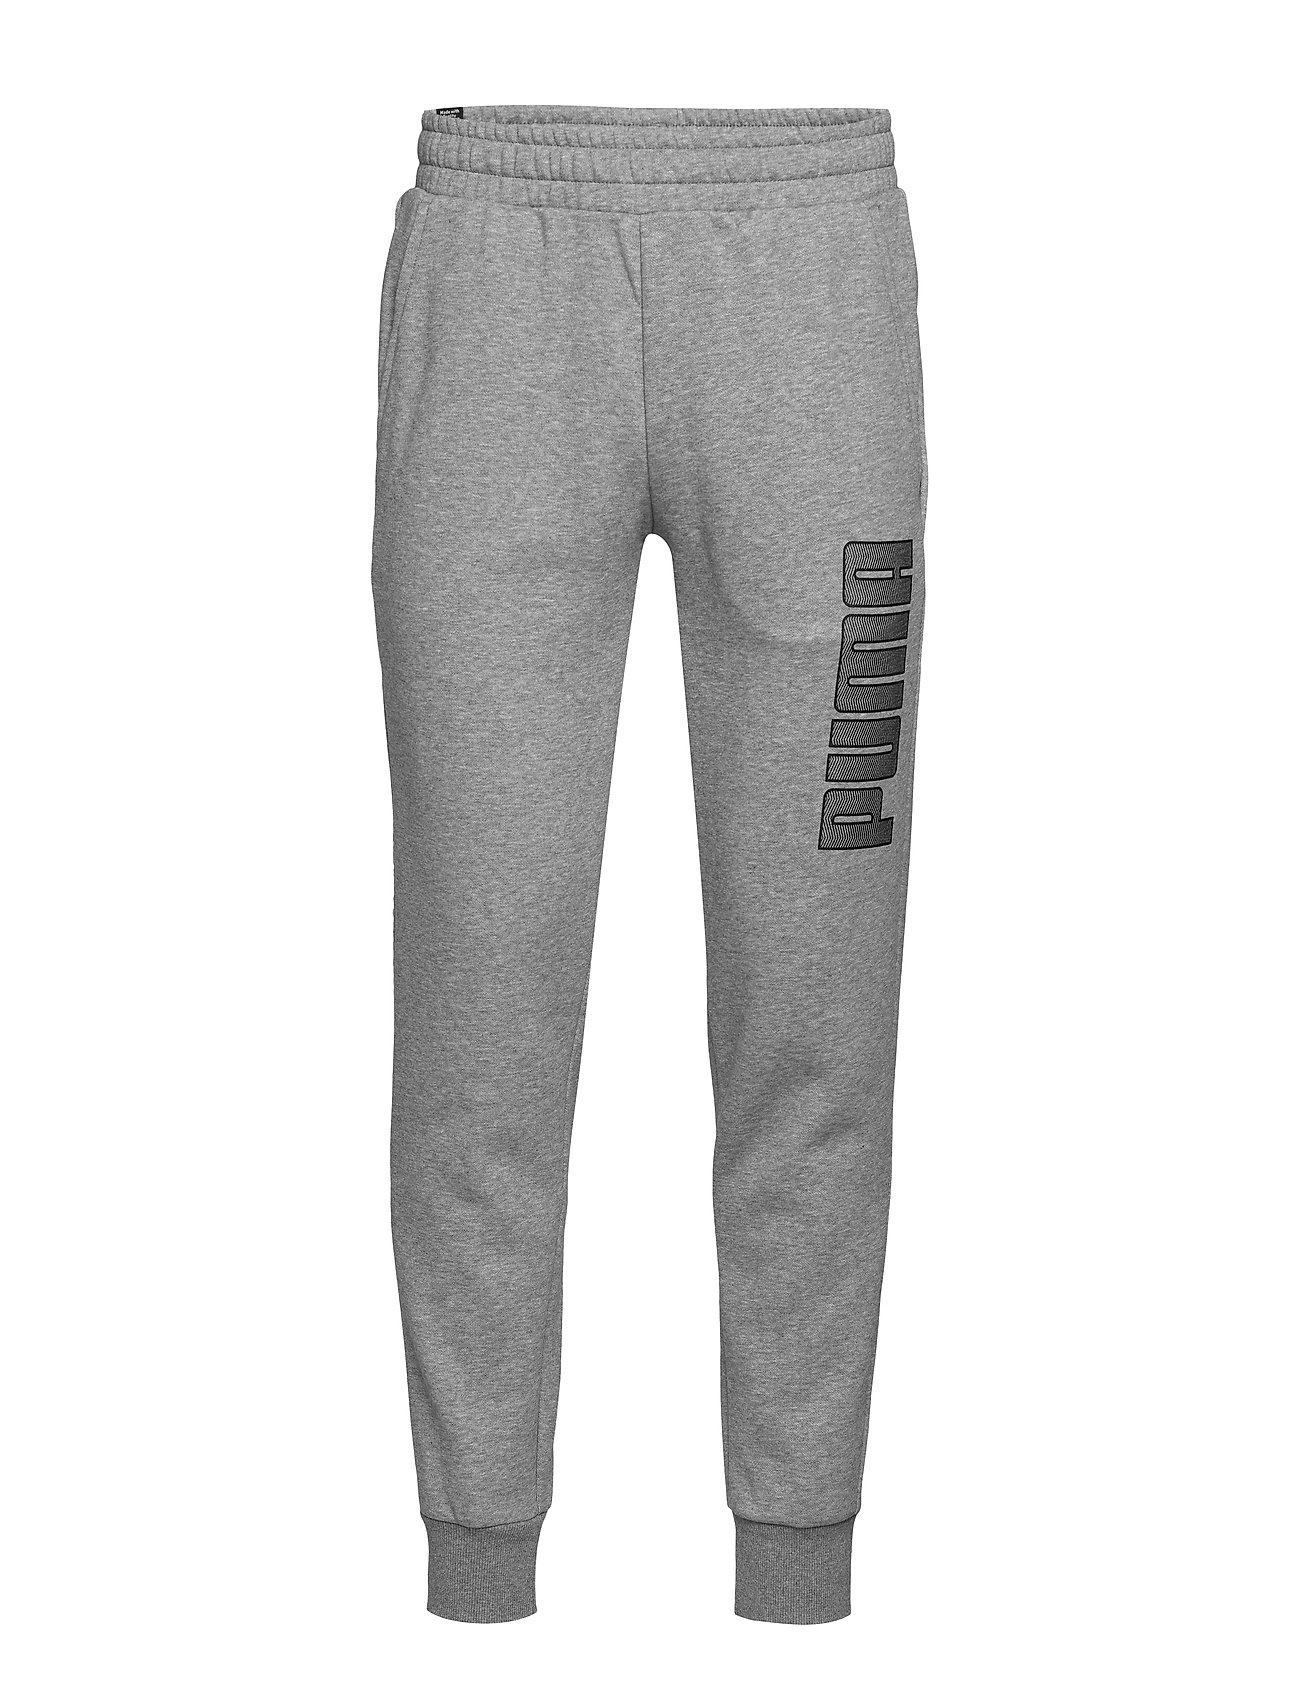 PUMA KA Pants FL cl - MEDIUM GRAY HEATHER